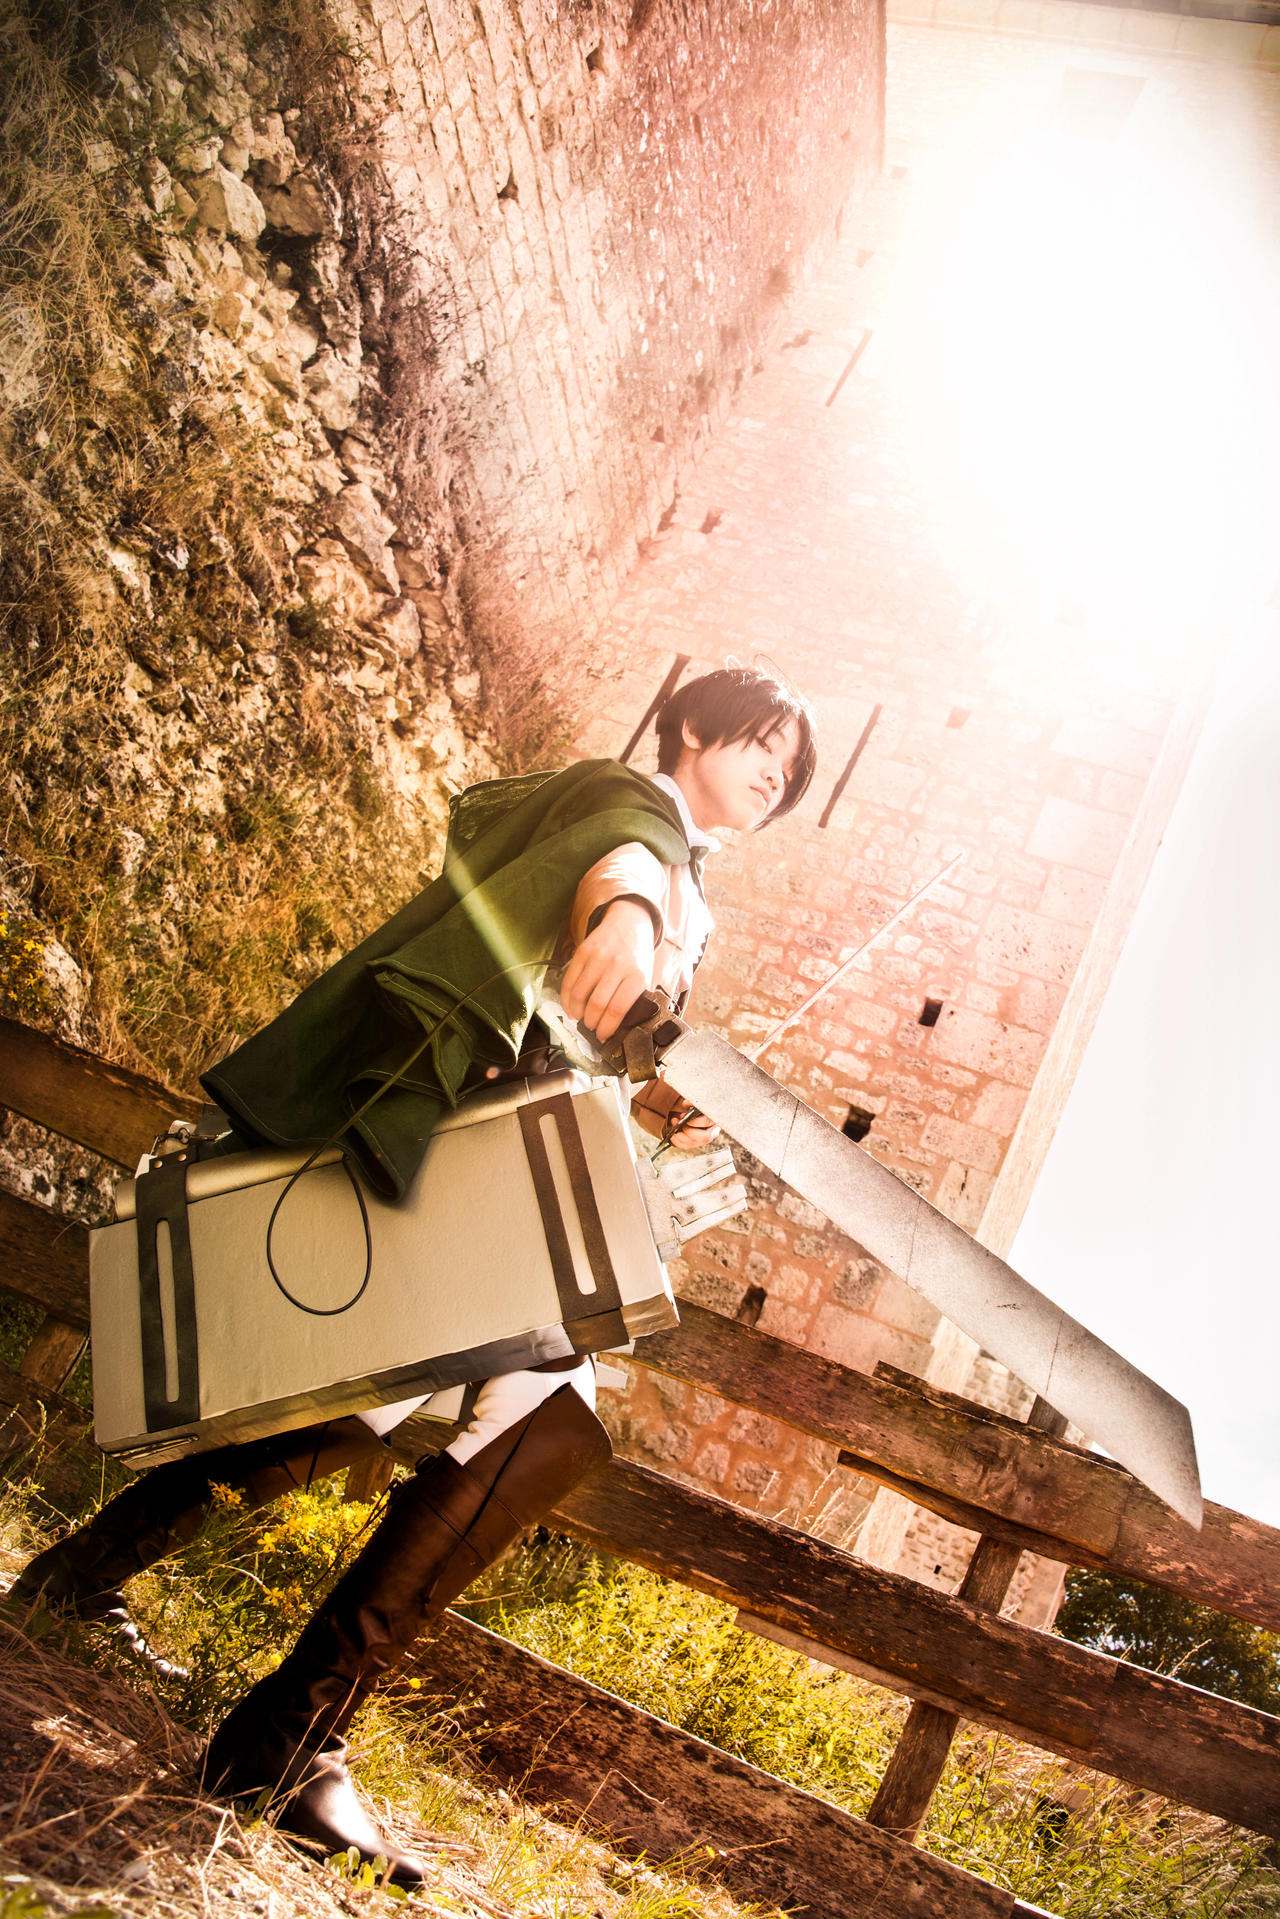 Shingeki no Kyojin - The One Who Joined by TrustOurWorldNow